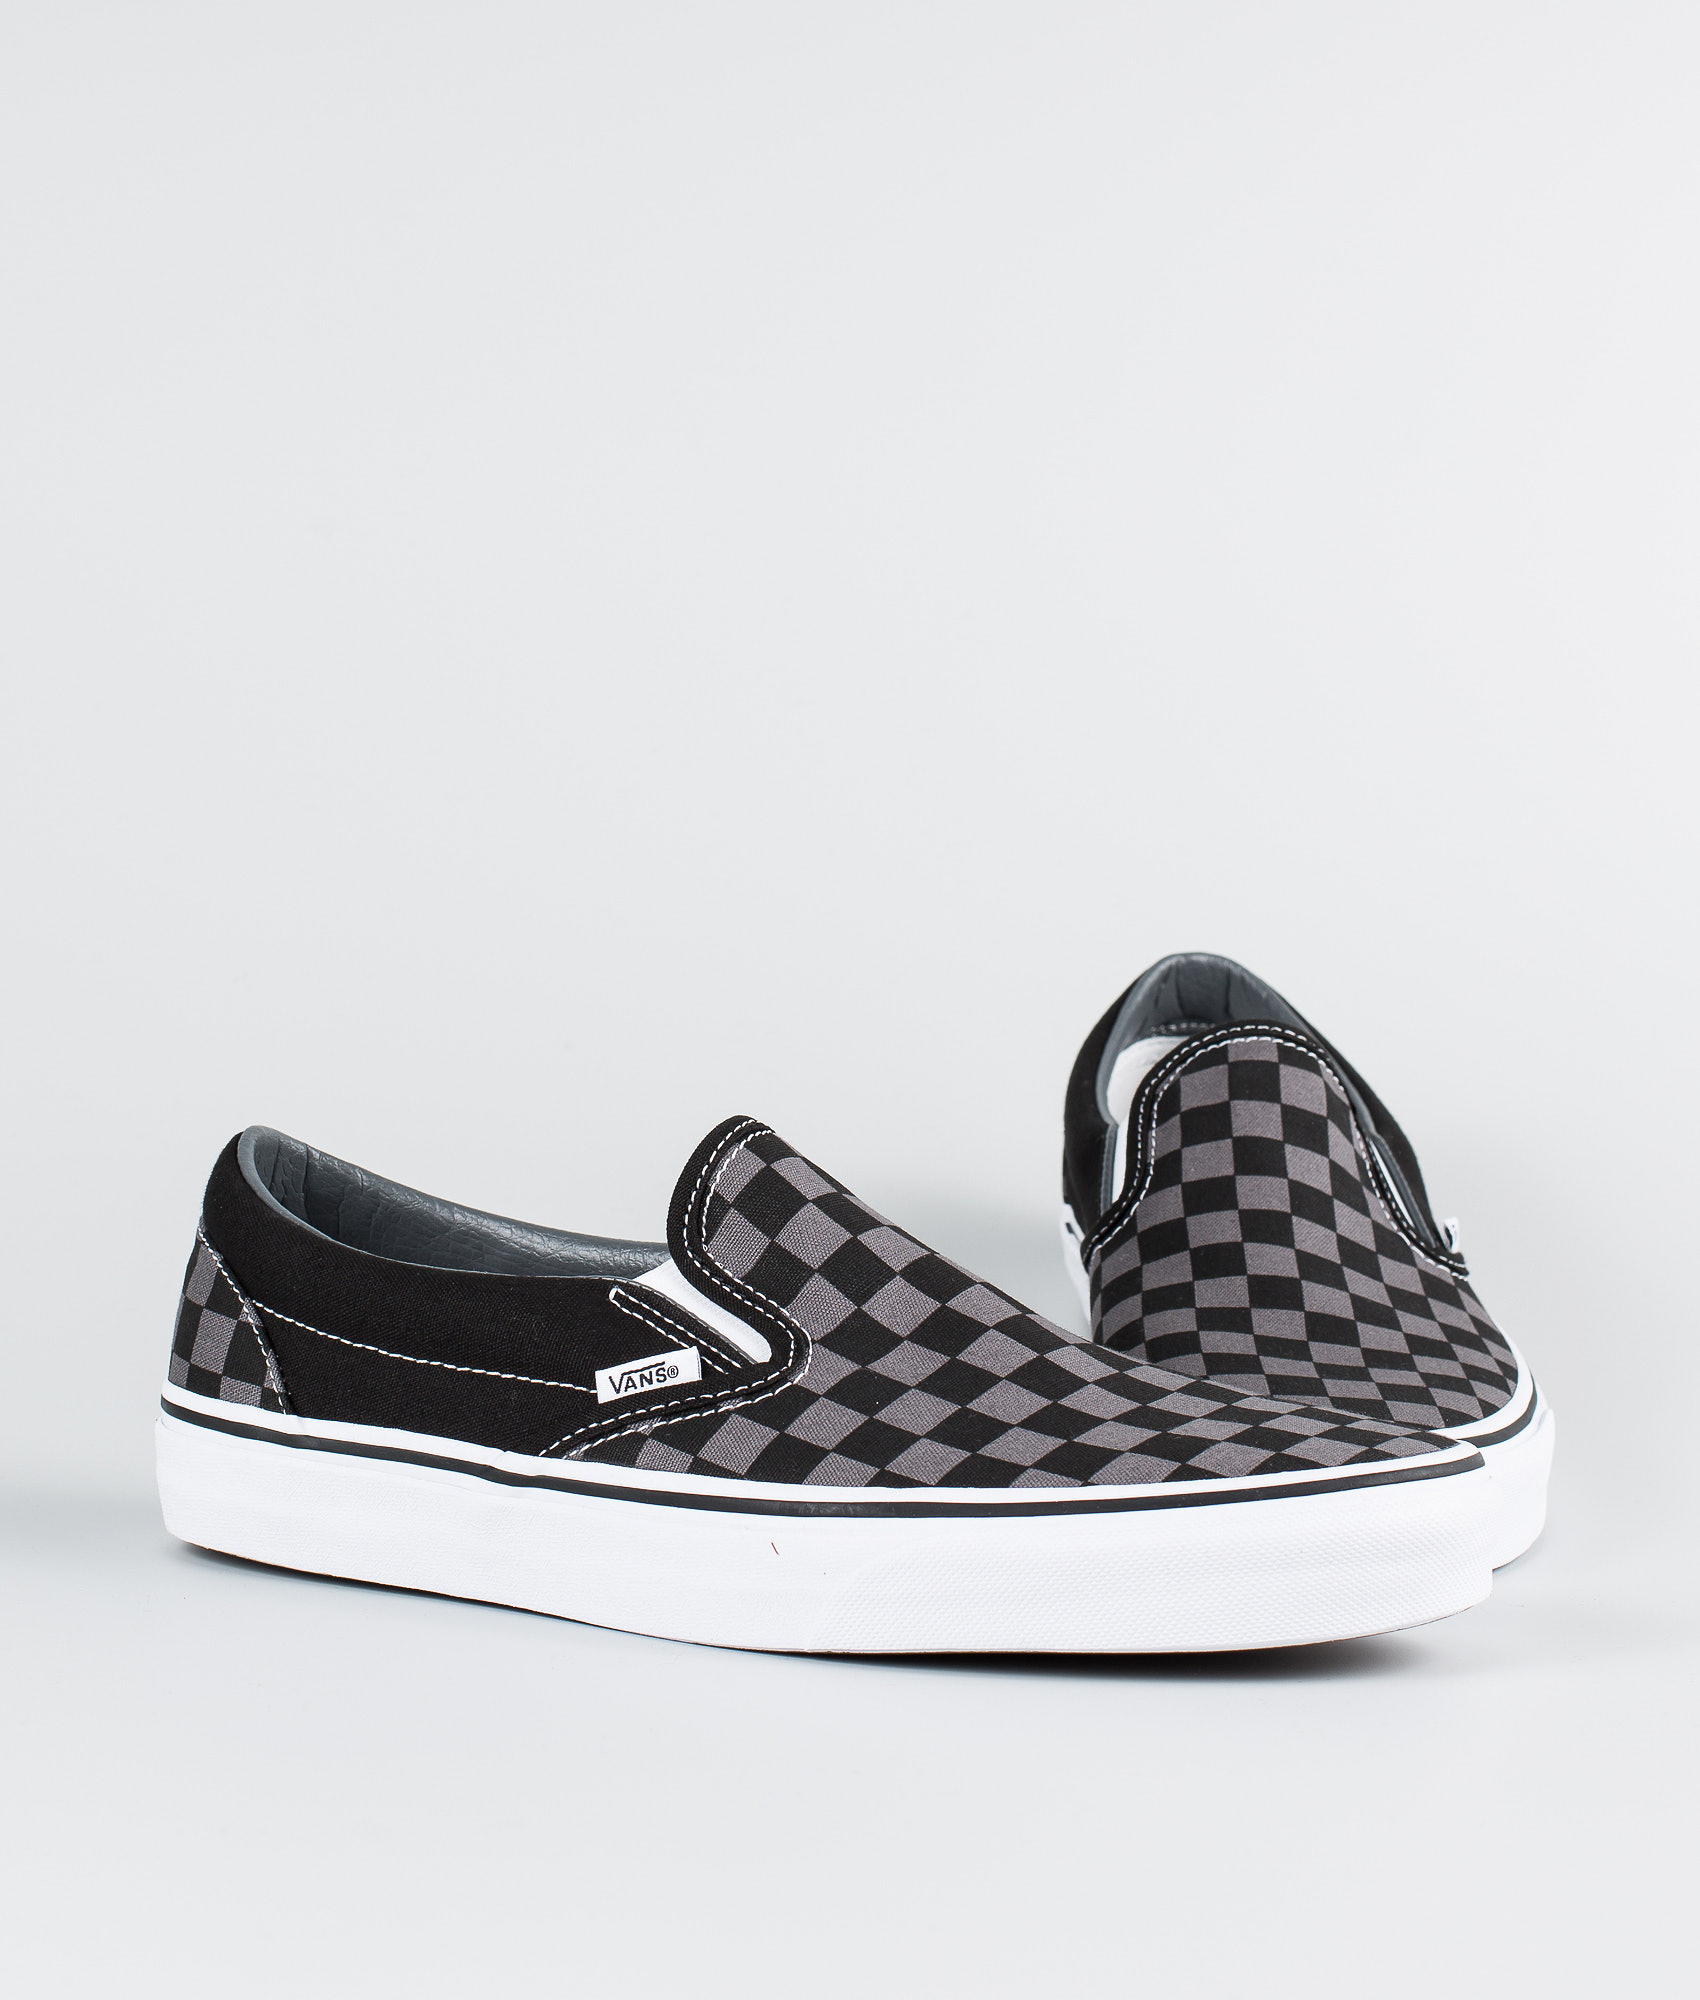 Vans Classic Slip-On Shoes Black Pewter Checkerboard - Ridestore.com c6c00c8c2